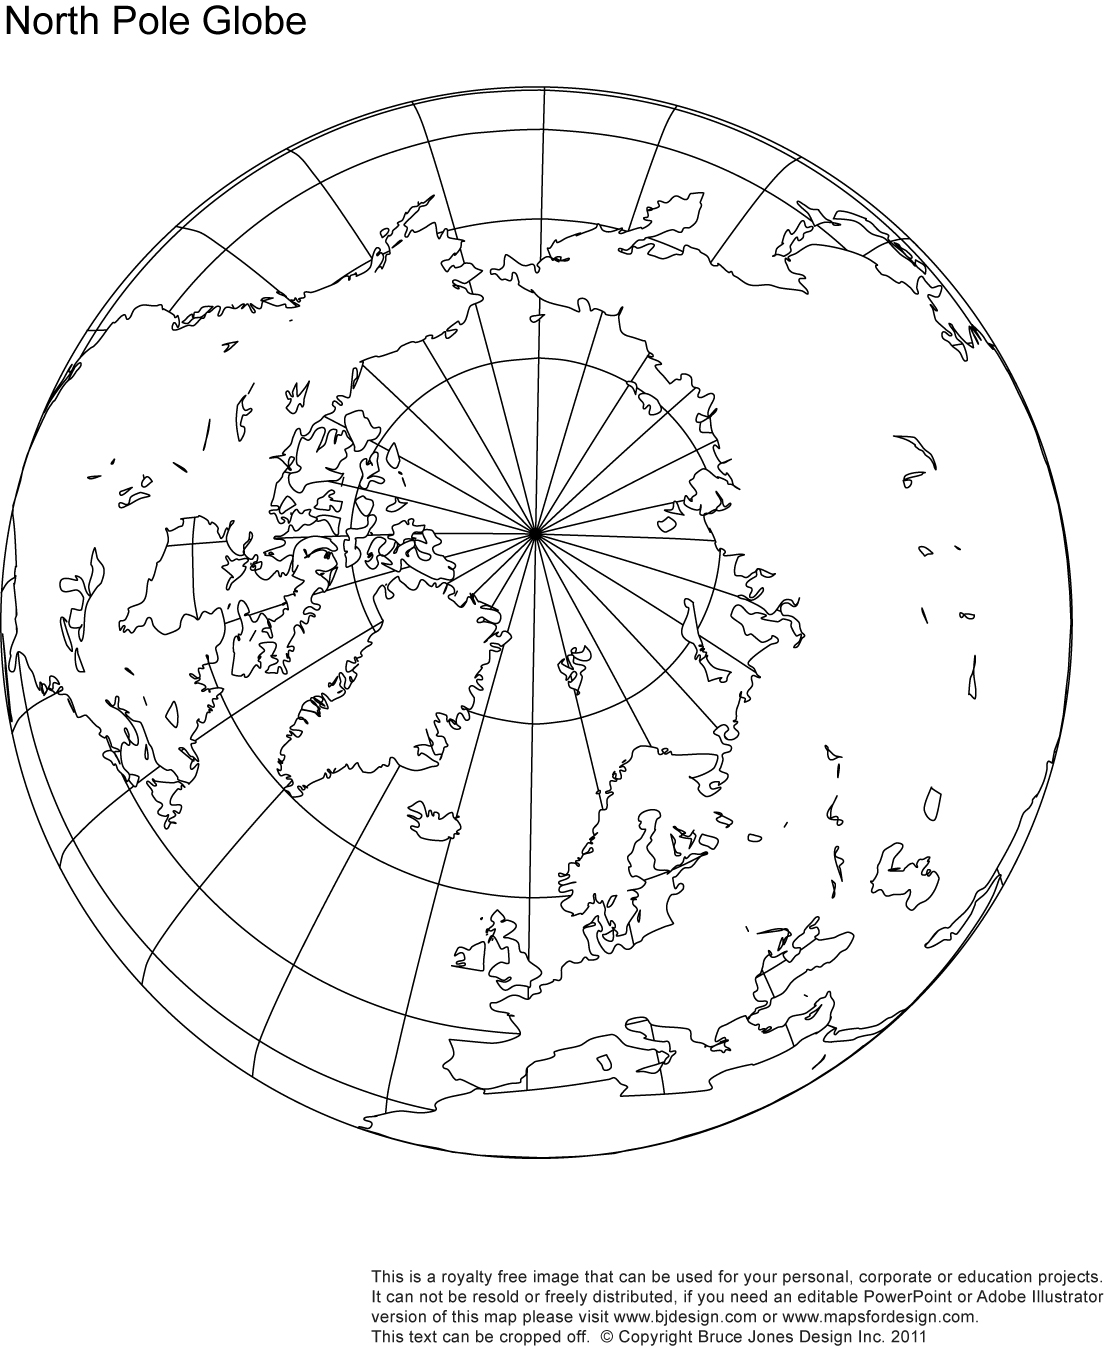 It's just a photo of Universal Printable Globe Template